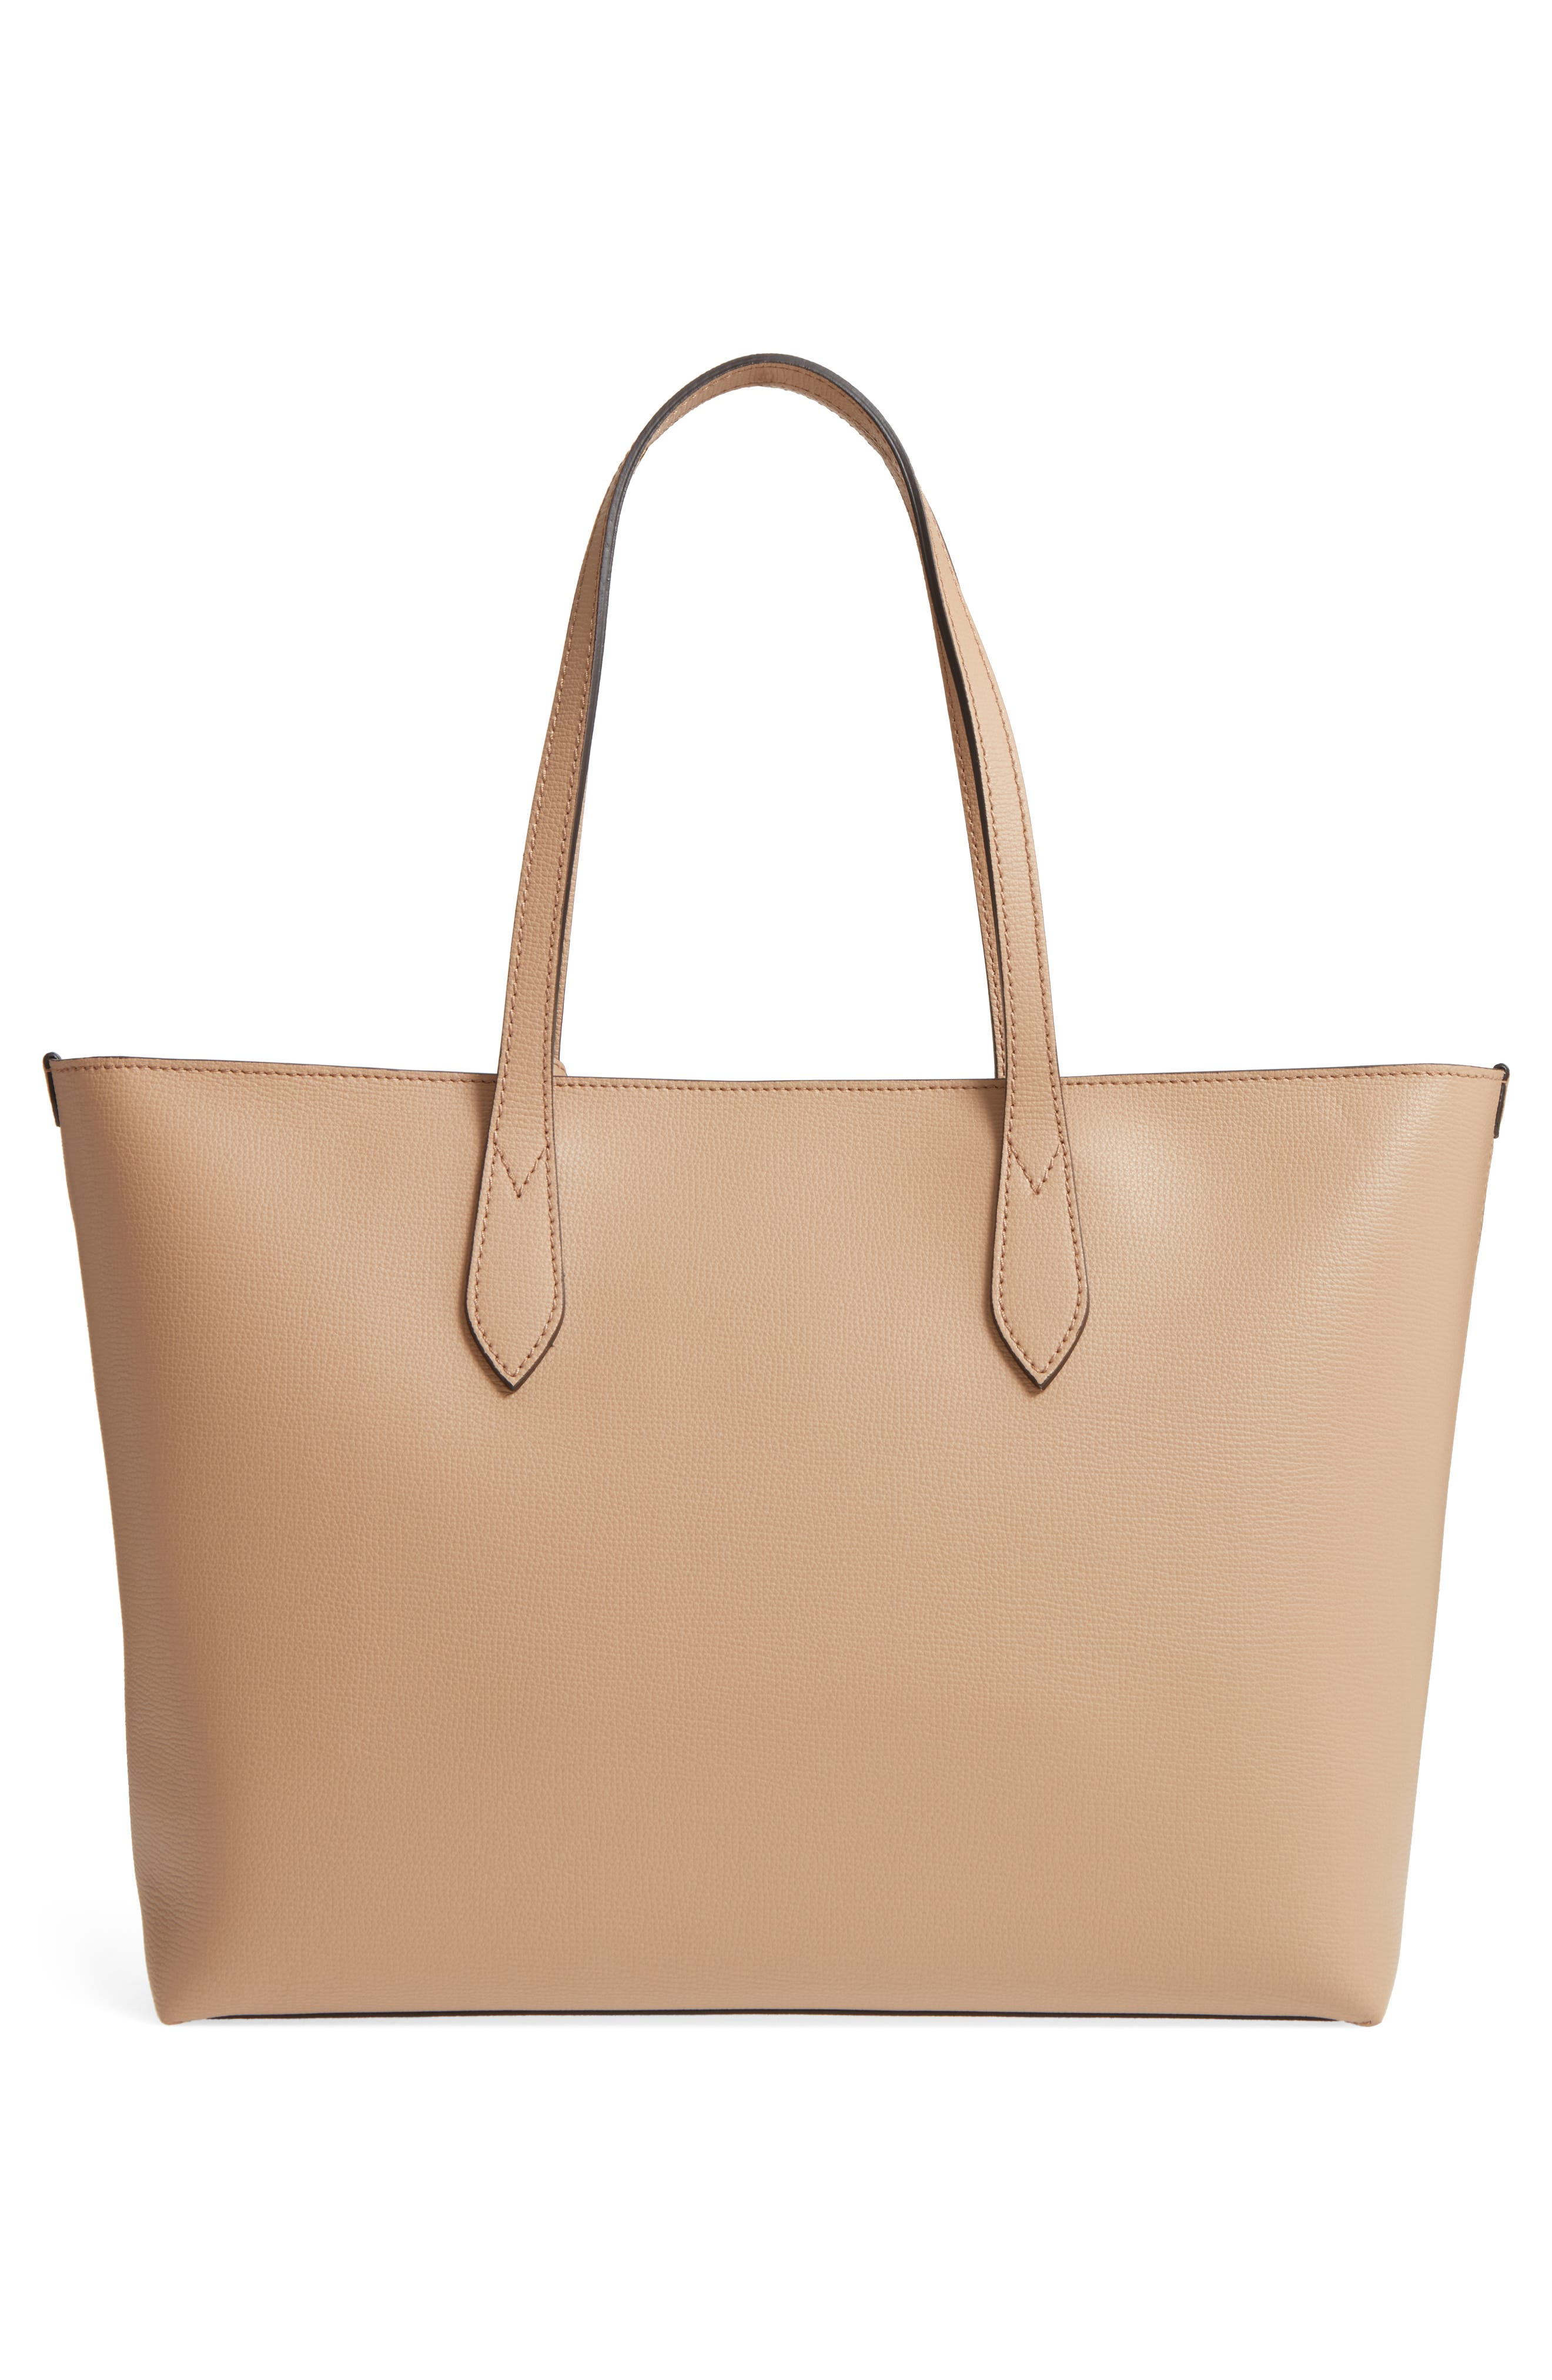 Calfskin Leather Tote,                             Alternate thumbnail 3, color,                             267